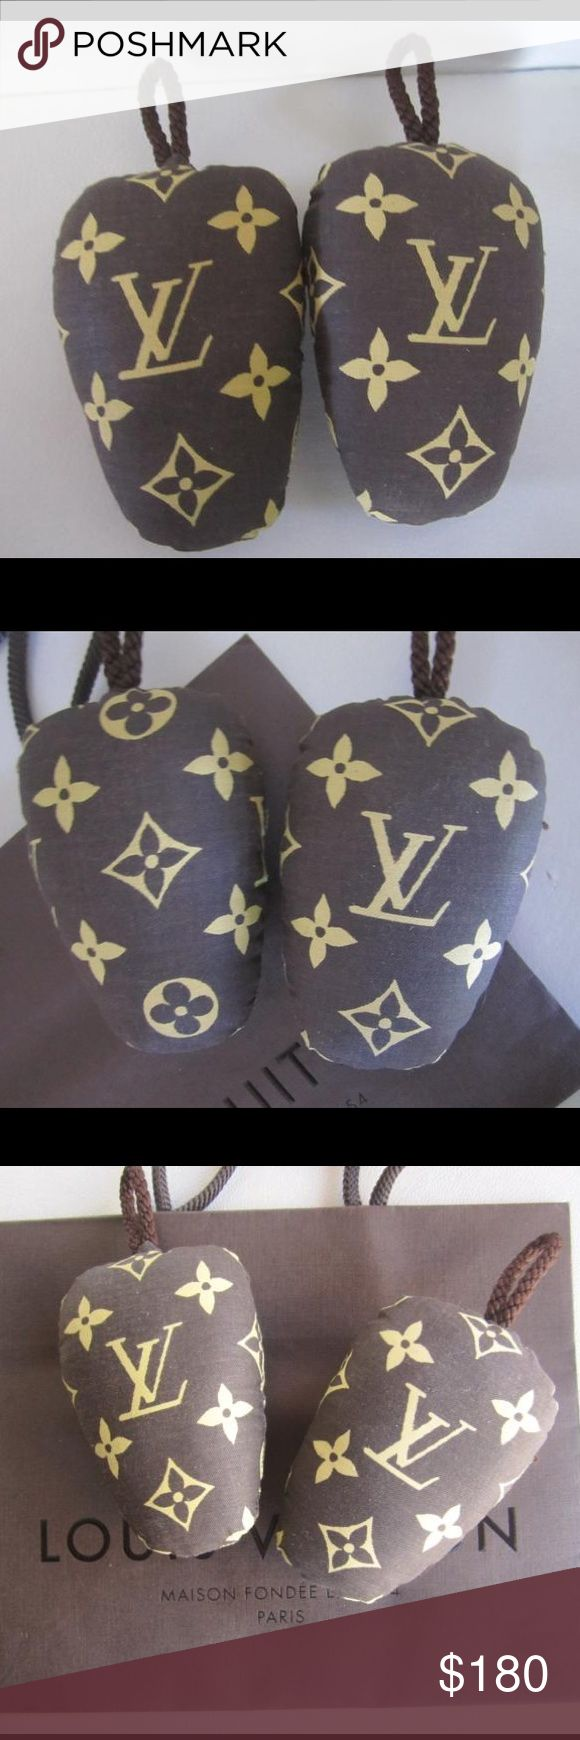 """Auth. Louis Vuitton Shoe Inserts For Ladies Shoes Preowned. Very good condition. Please view all photos carefully, as they are an essential part of the description. Dimensions: 4"""" length, 2.75"""" width, 1"""" depth. For ladies shoes. Louis Vuitton monogram fabric inserts. Very rare and collectible vintage item! Keep your shoes looking great, or just add these to your collection. Makes a great gift for the Louis Vuitton collector. Louis Vuitton bag is shown for display only. Price is firm. No…"""